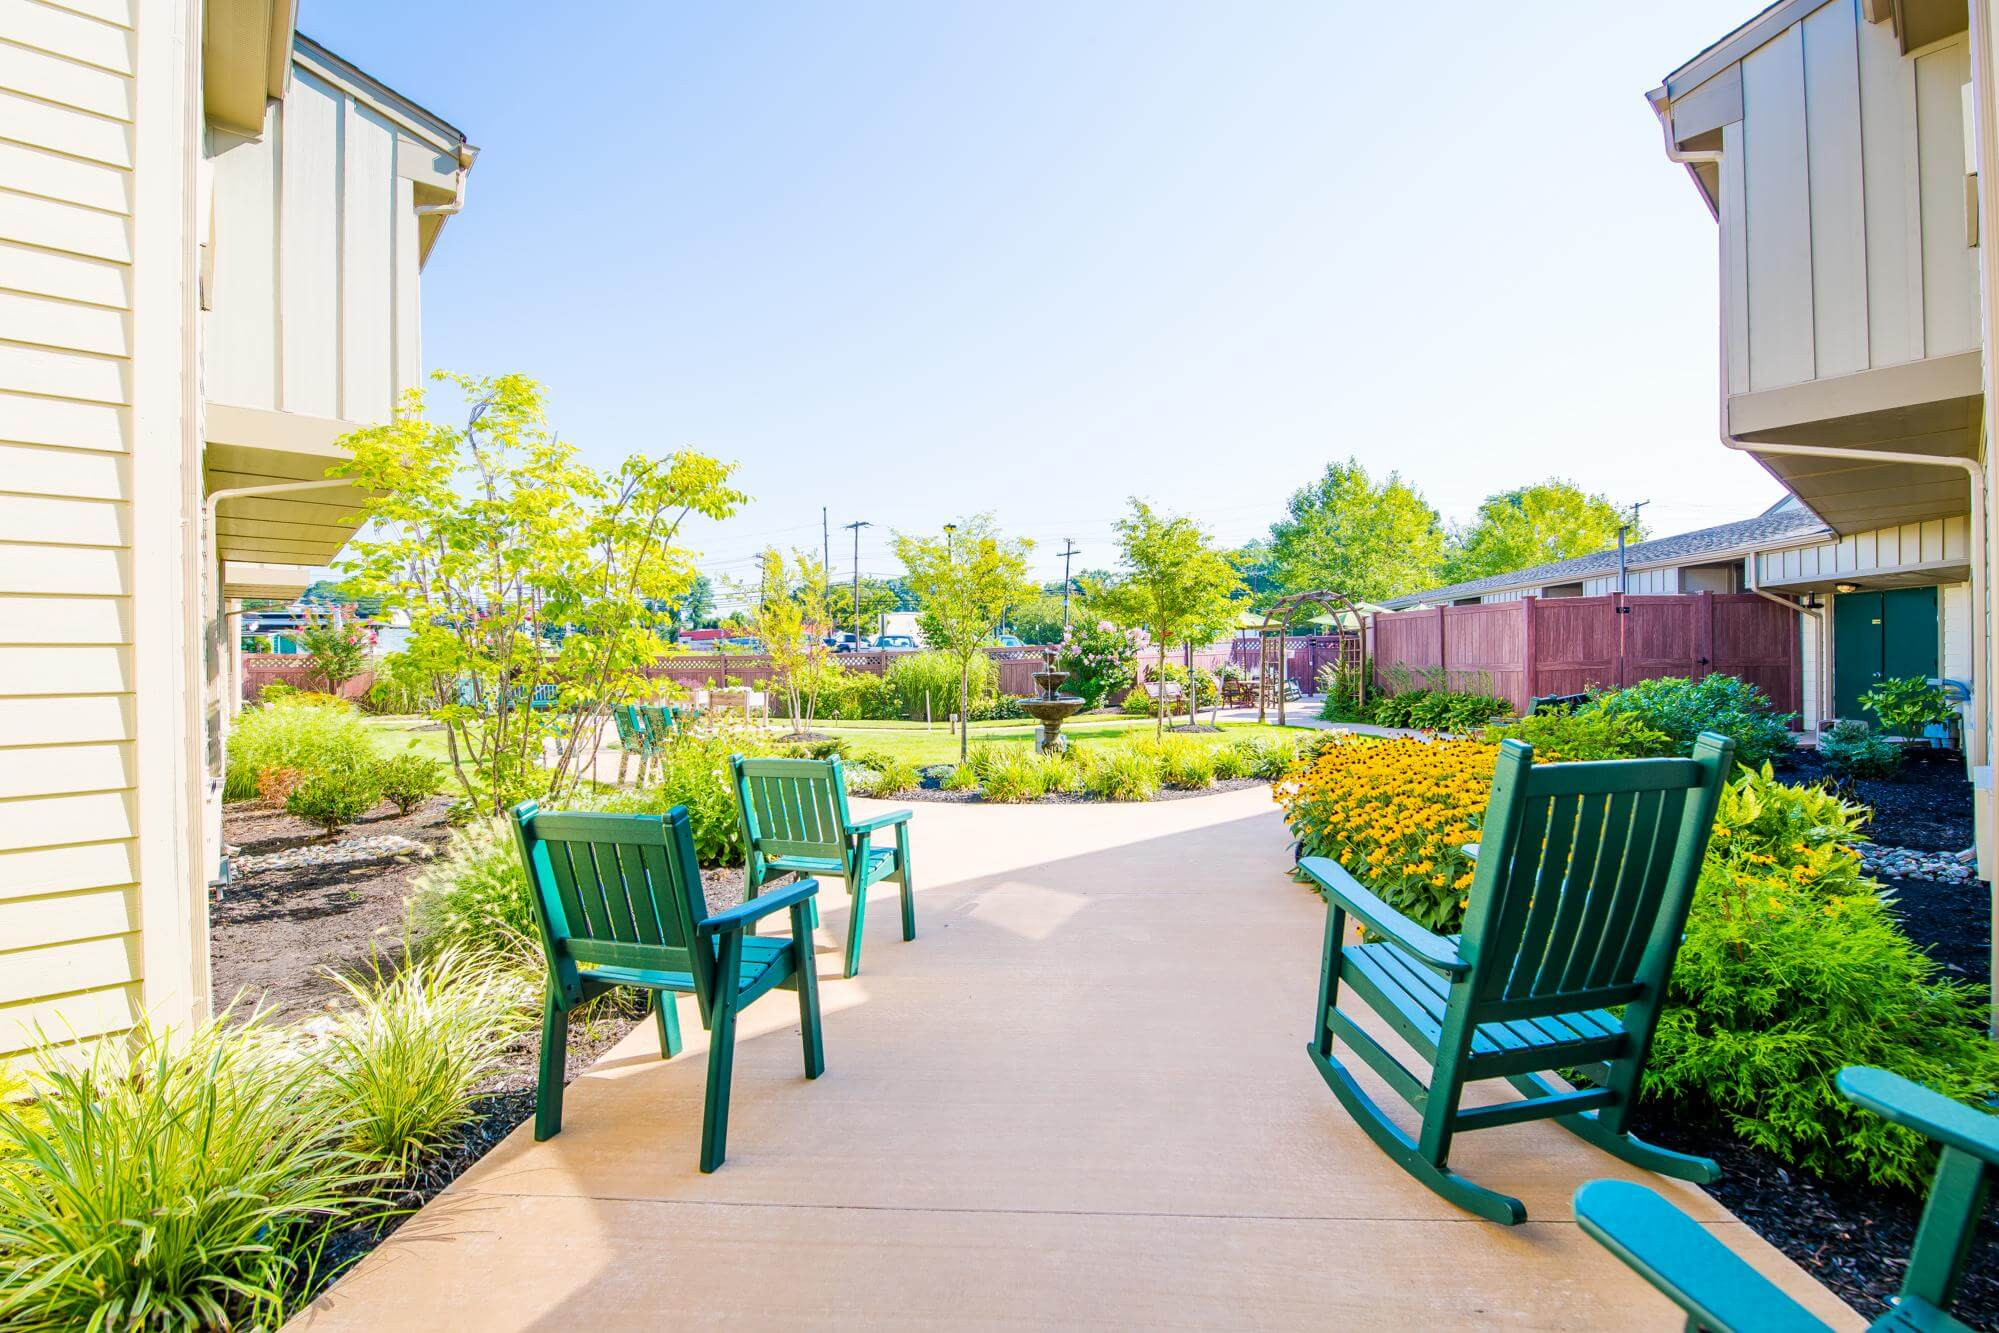 arbor-terrace-middletown-lush-outdoor-spaces